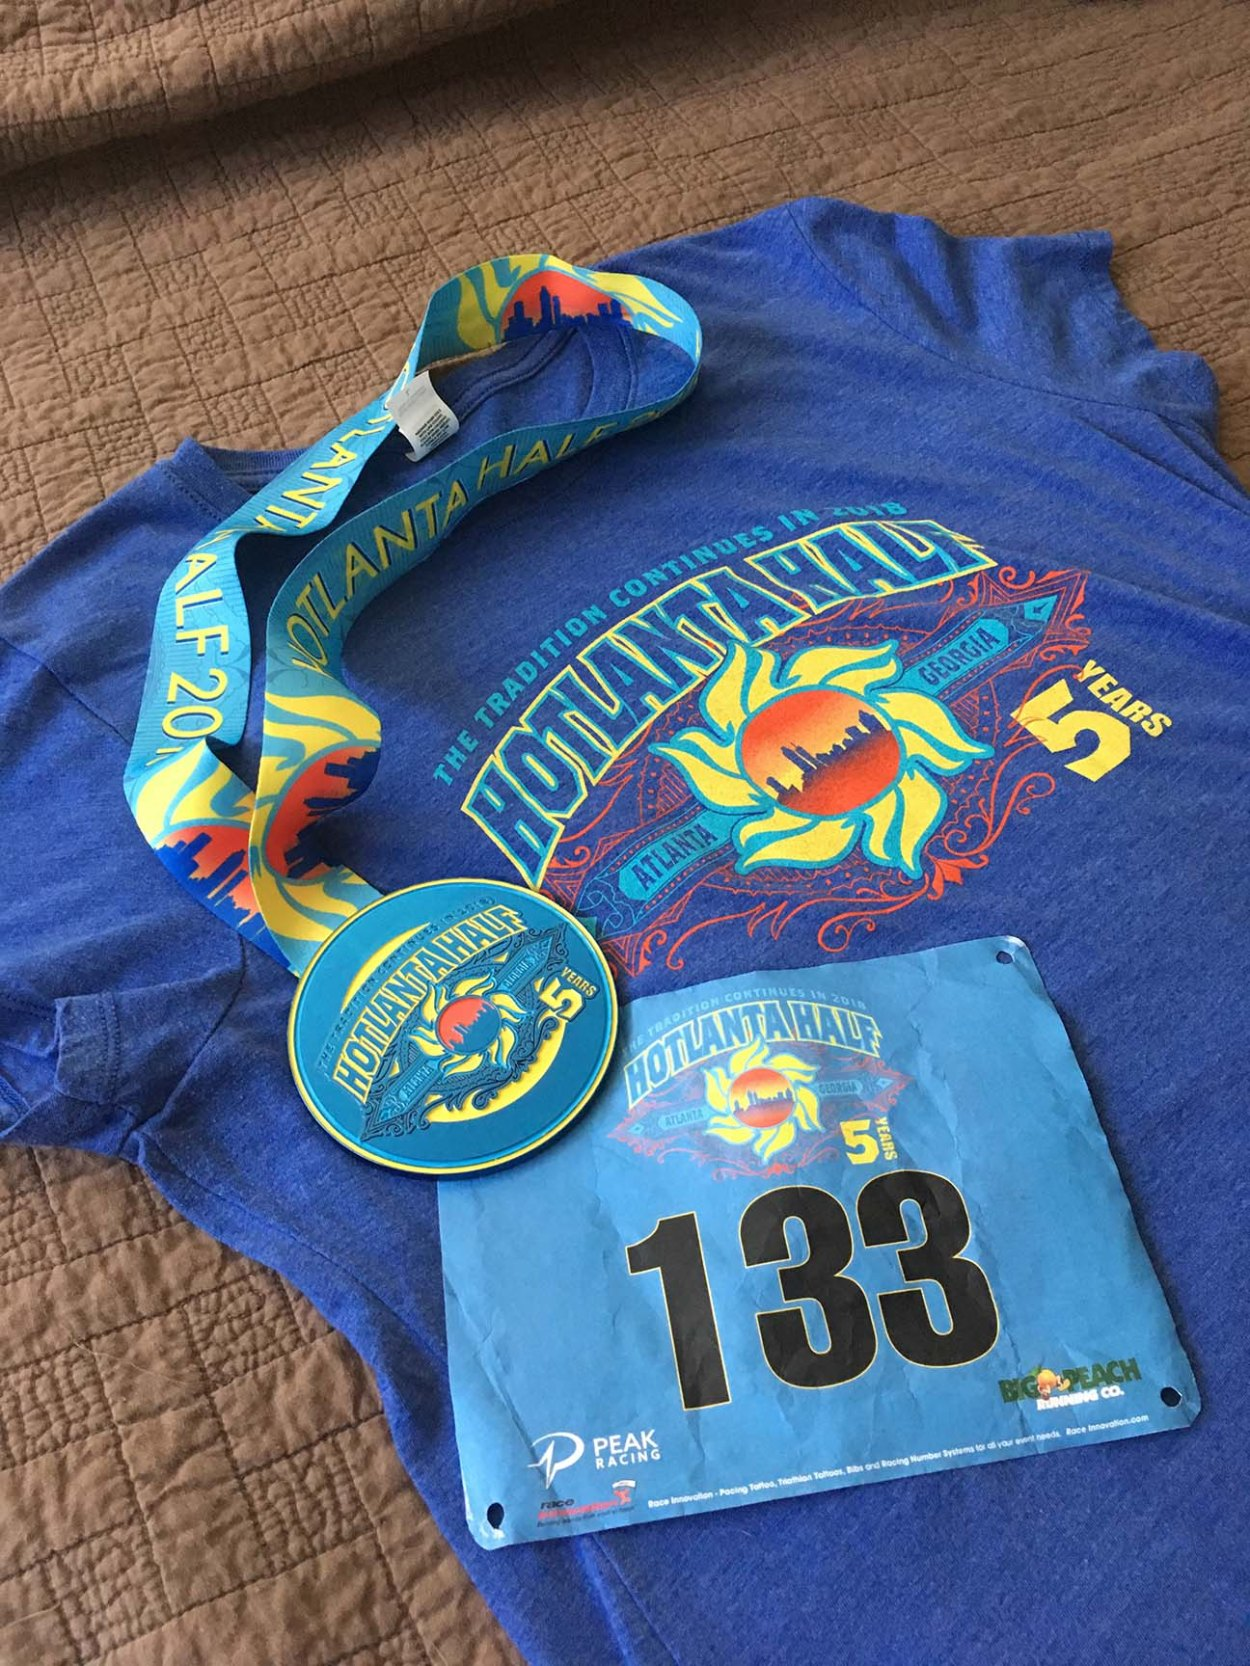 Hotlanta Half Marathon T-shirt, Medal, and Race Number